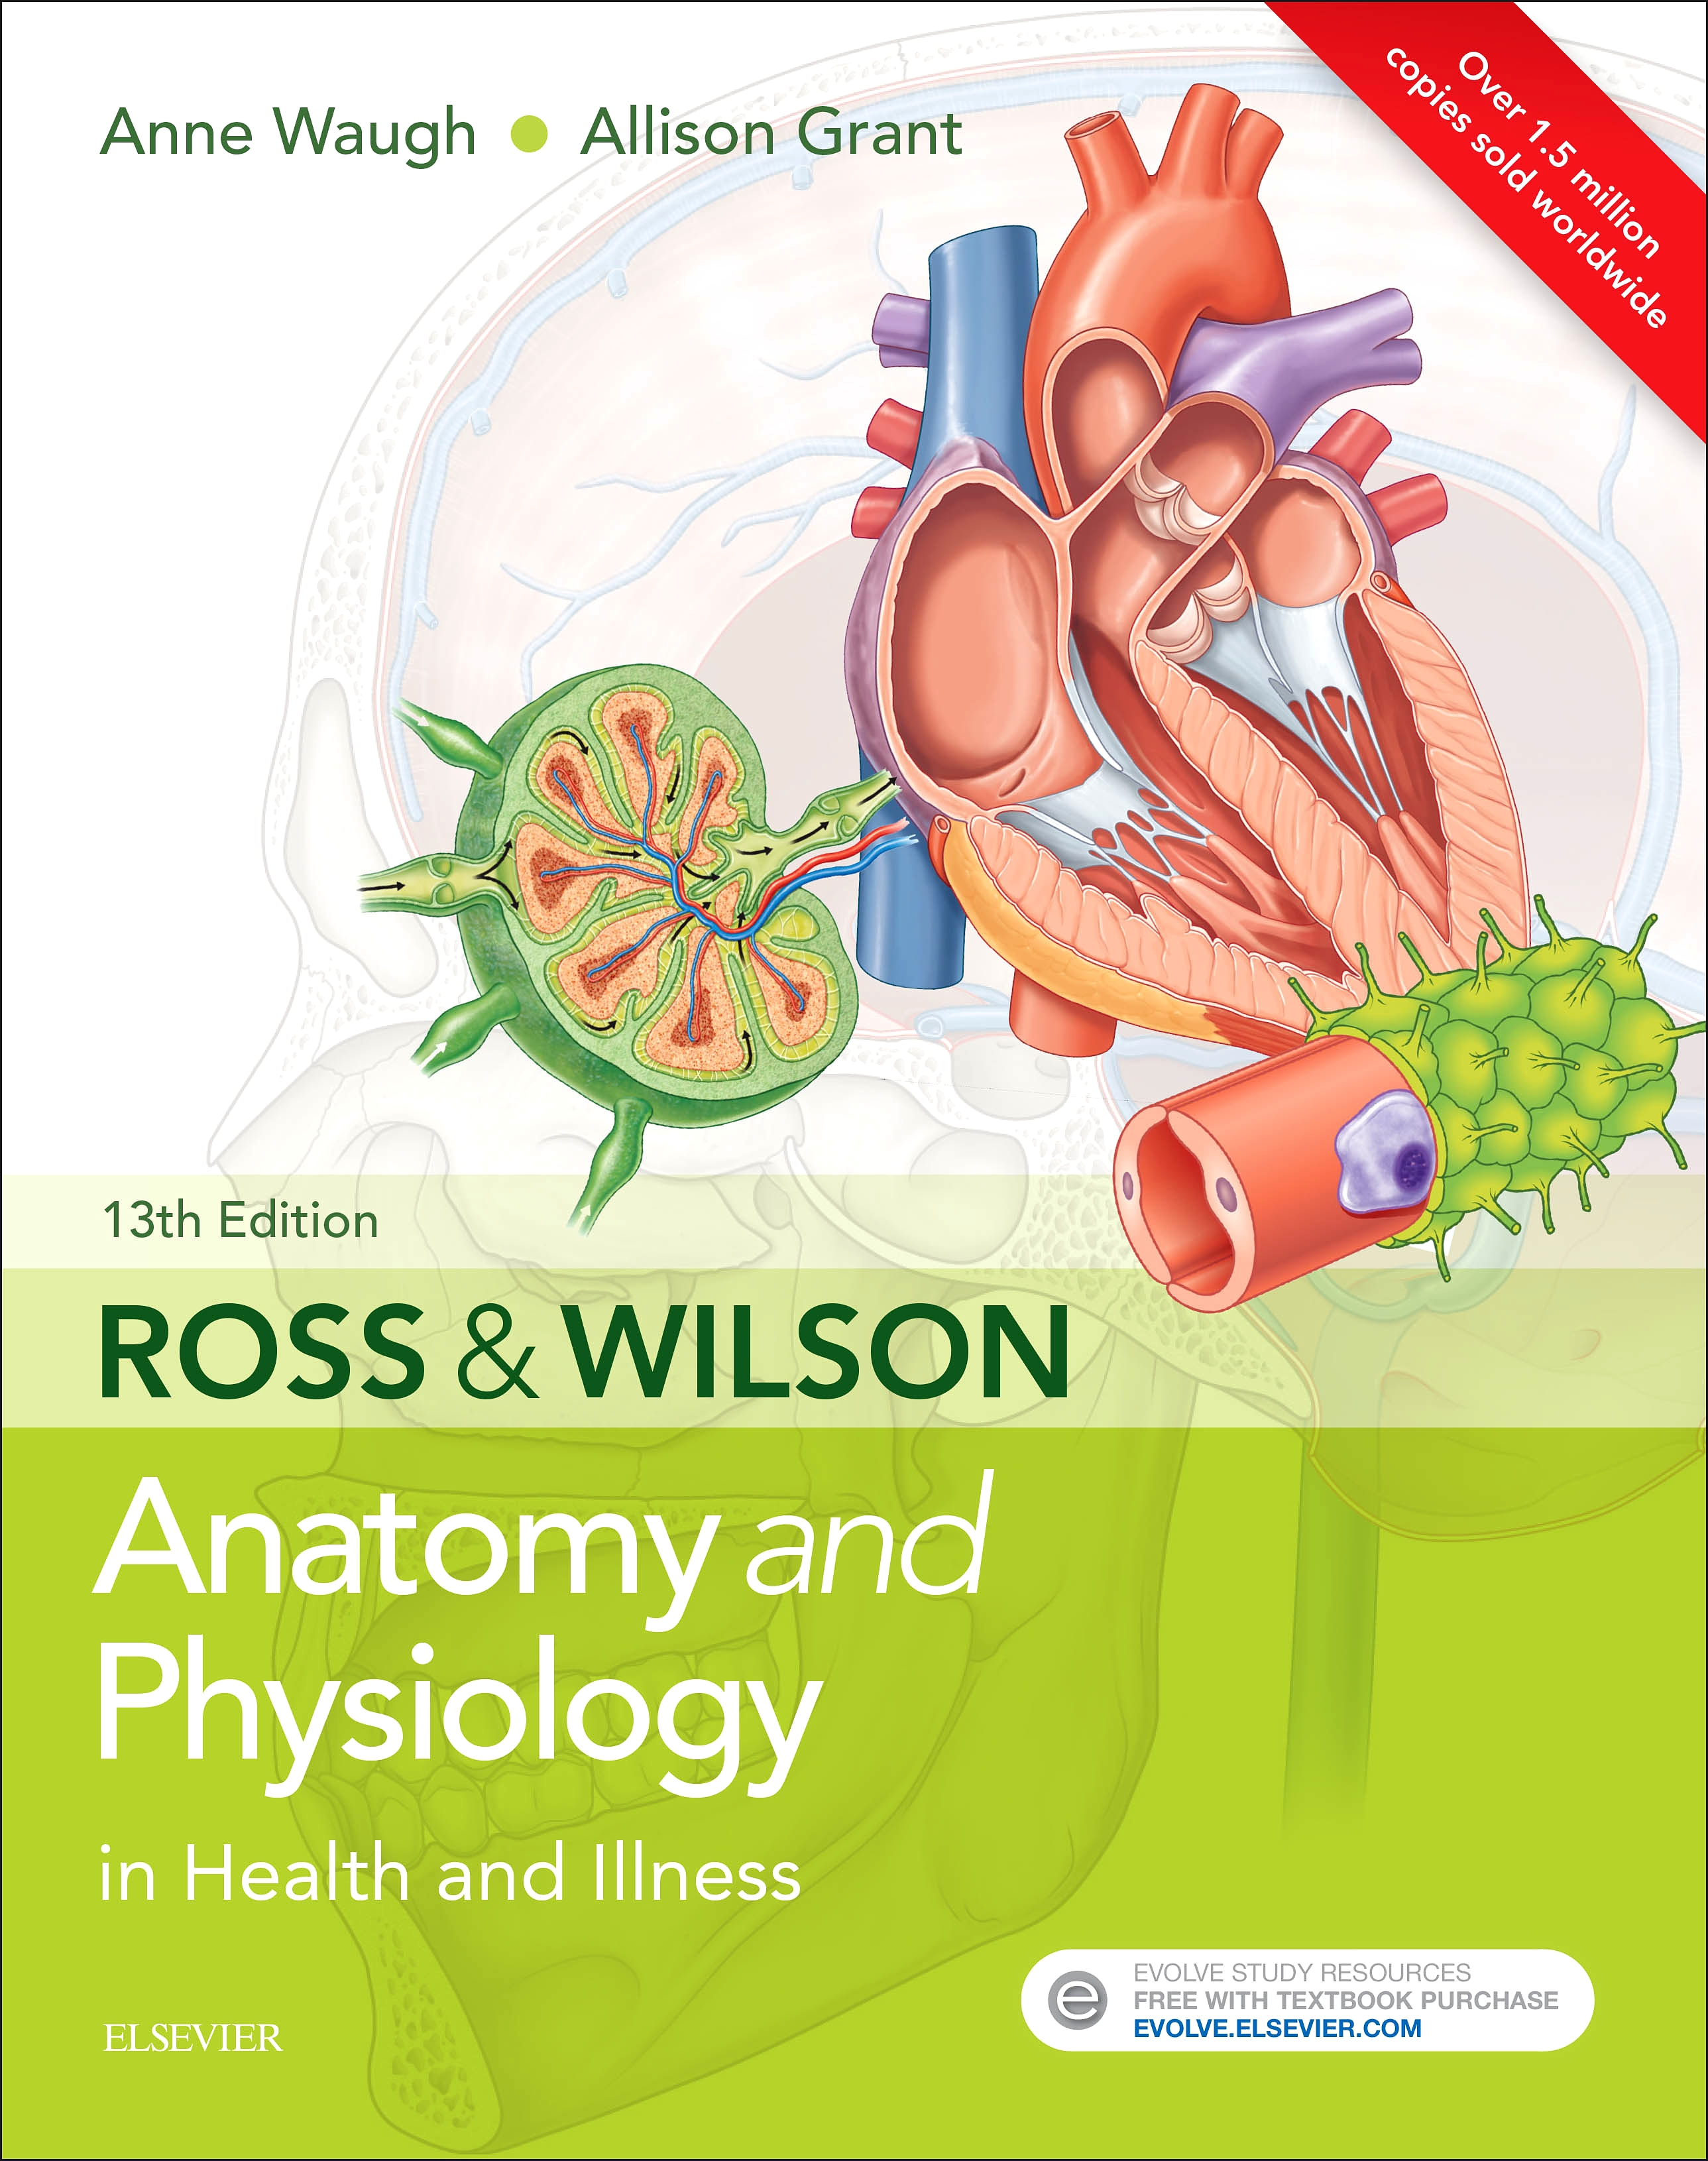 Ross & Wilson Anatomy and Physiology in Health and Illness Elsevier eBook on VitalSource, 13th Edition